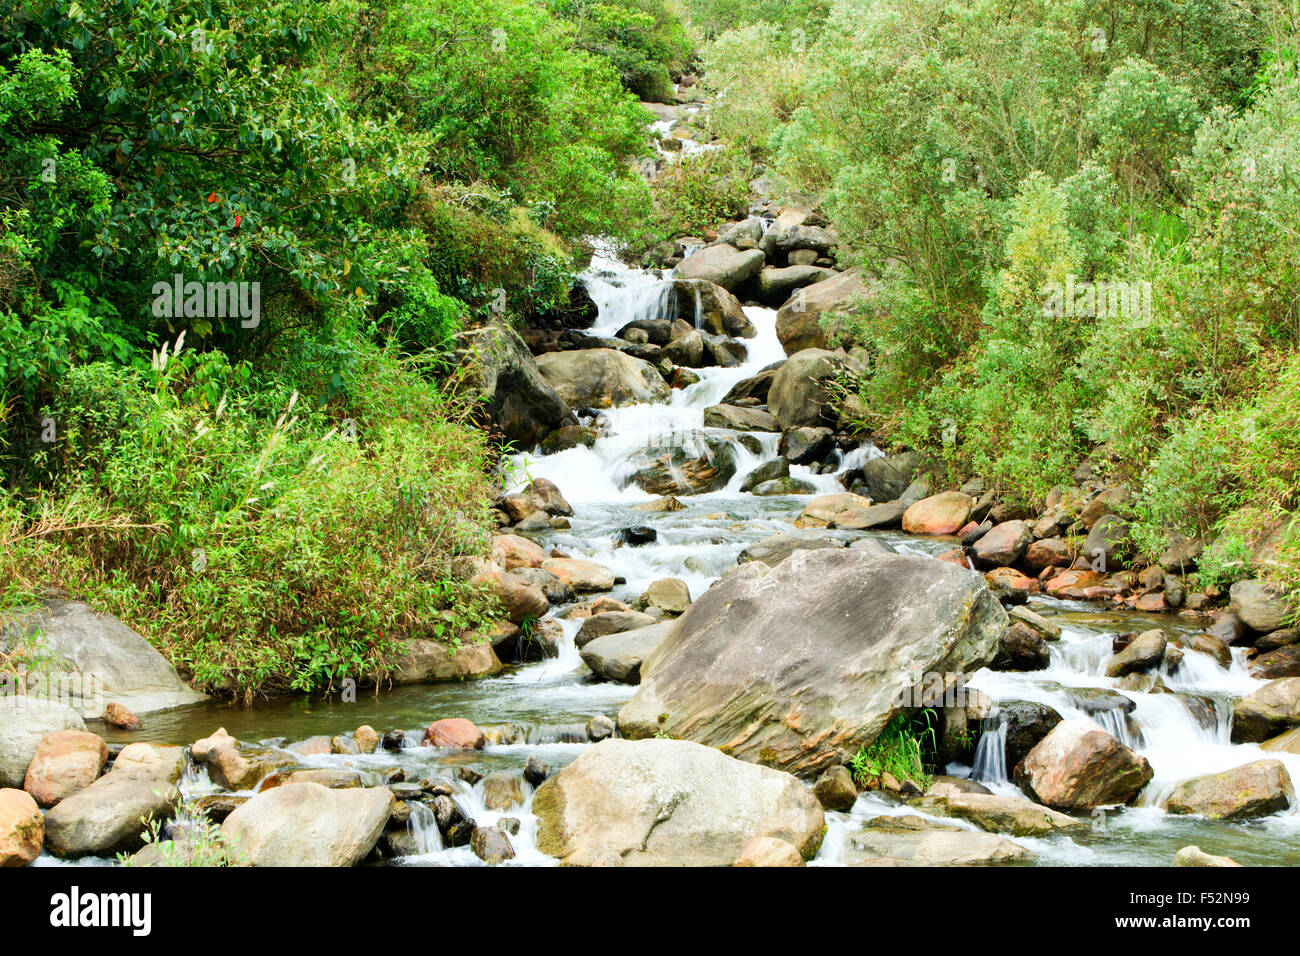 Volcanic Rocks In A Small River Close To Tungurahua Volcano In Ecuador - Stock Image